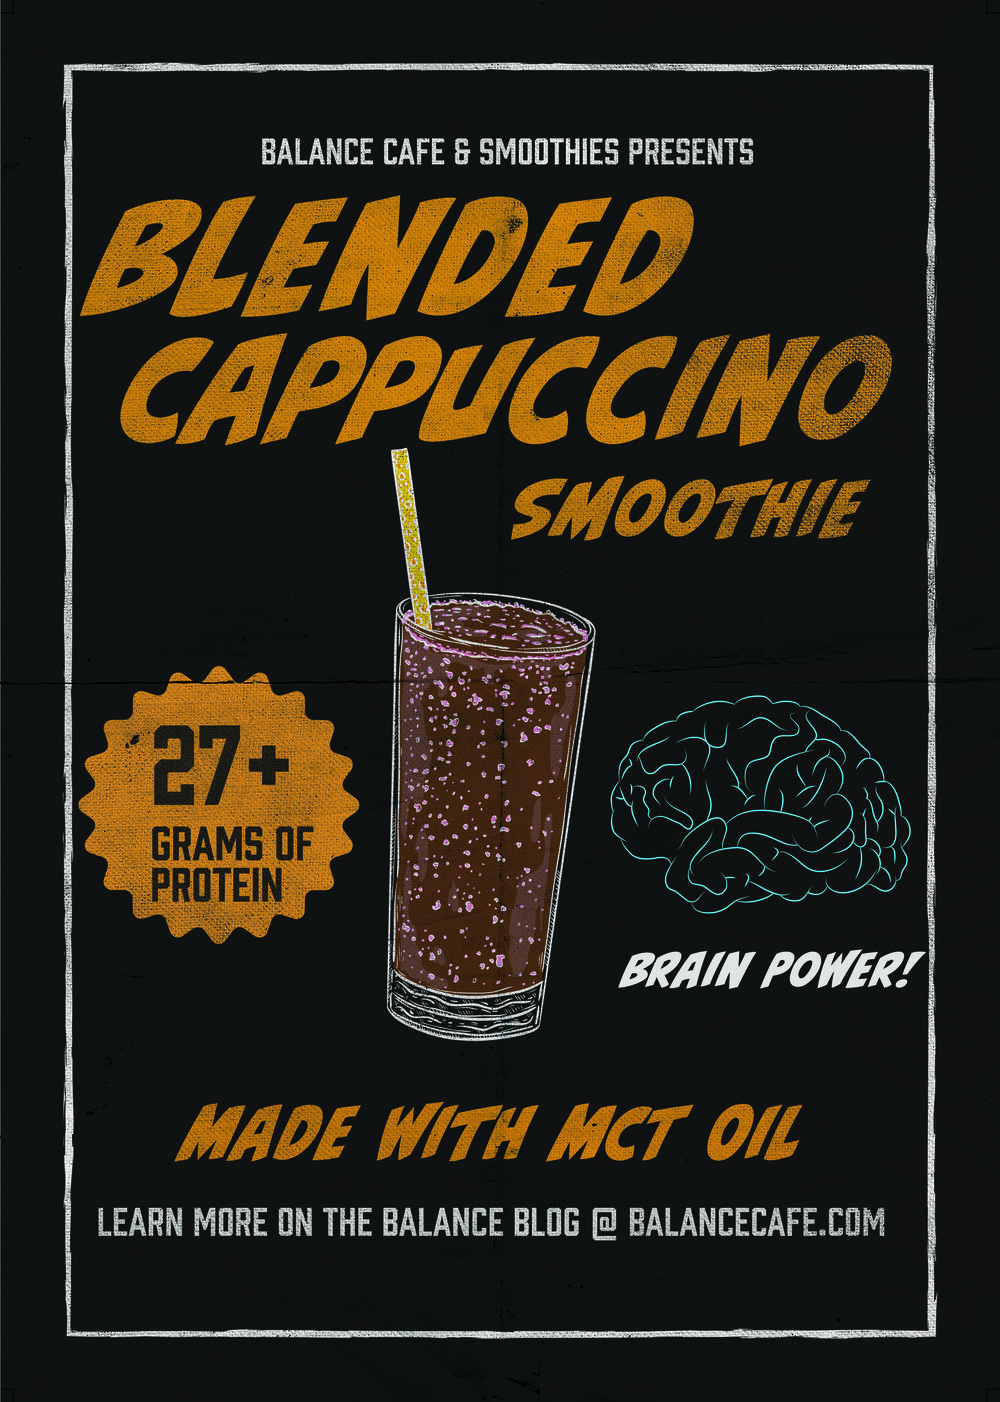 Cappuccino Smoothie.jpg